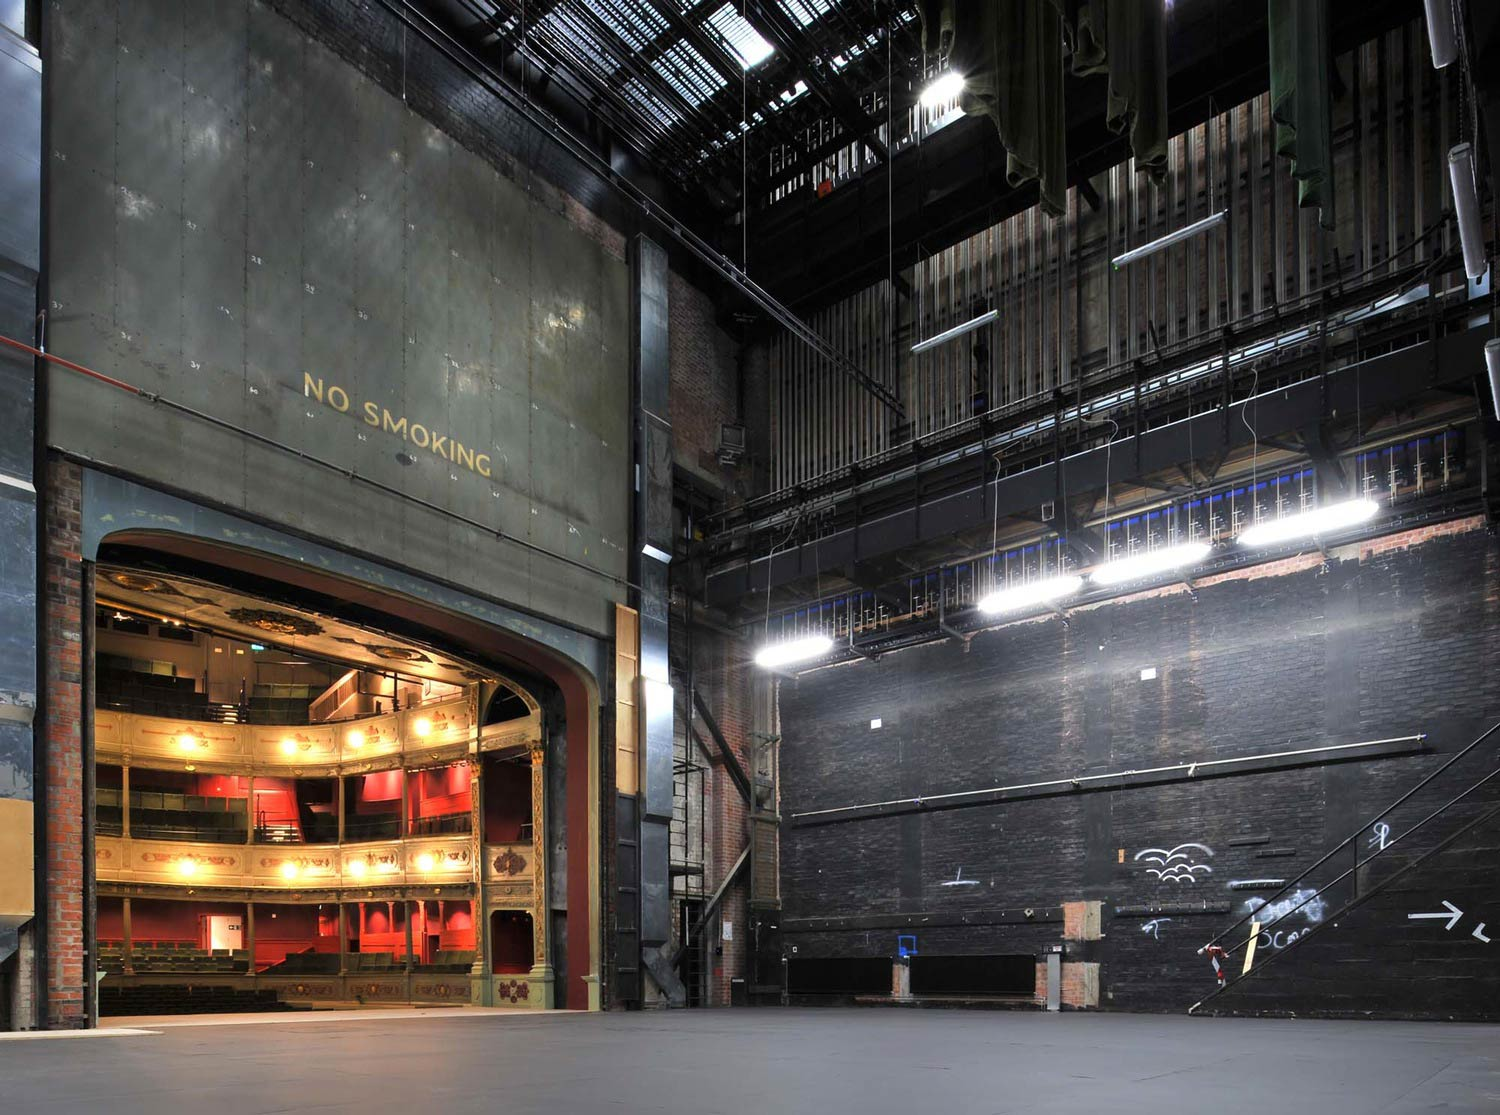 Backstage at Bristol old Vic. Image courtesy Bristol Old Vic